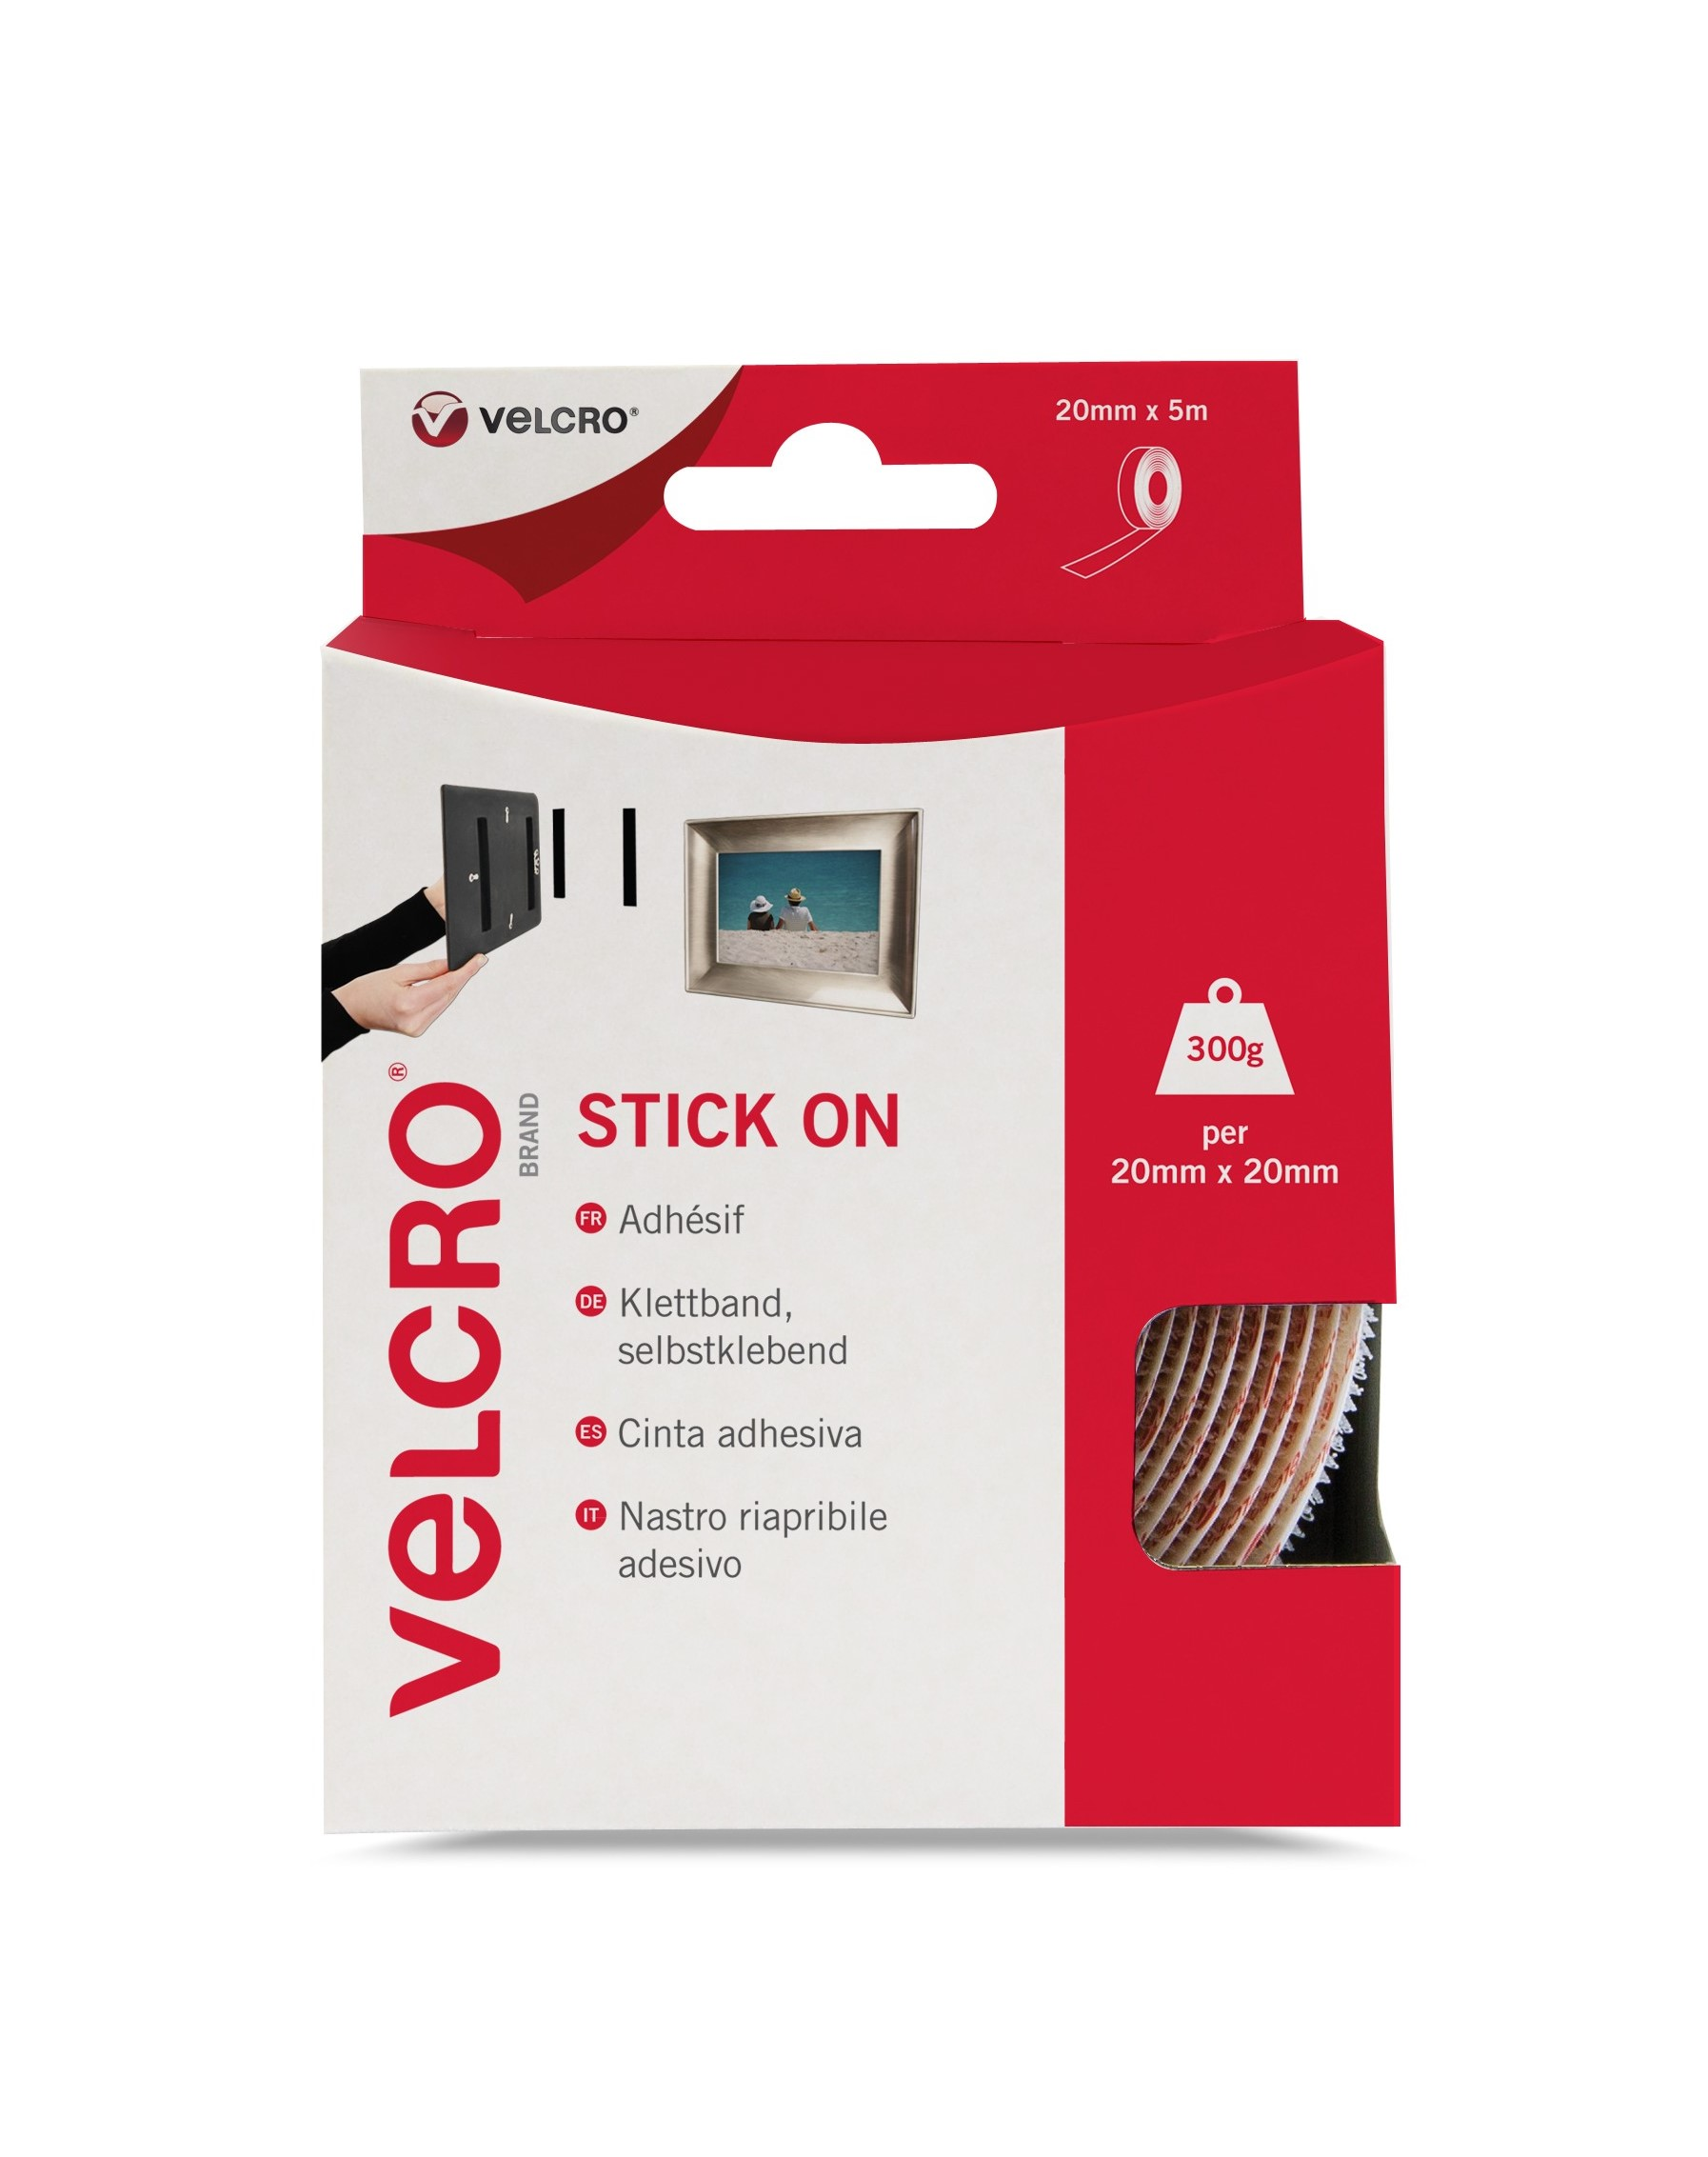 Accessories VELCRO White Stick On Hook N Loop 20mm X 5m